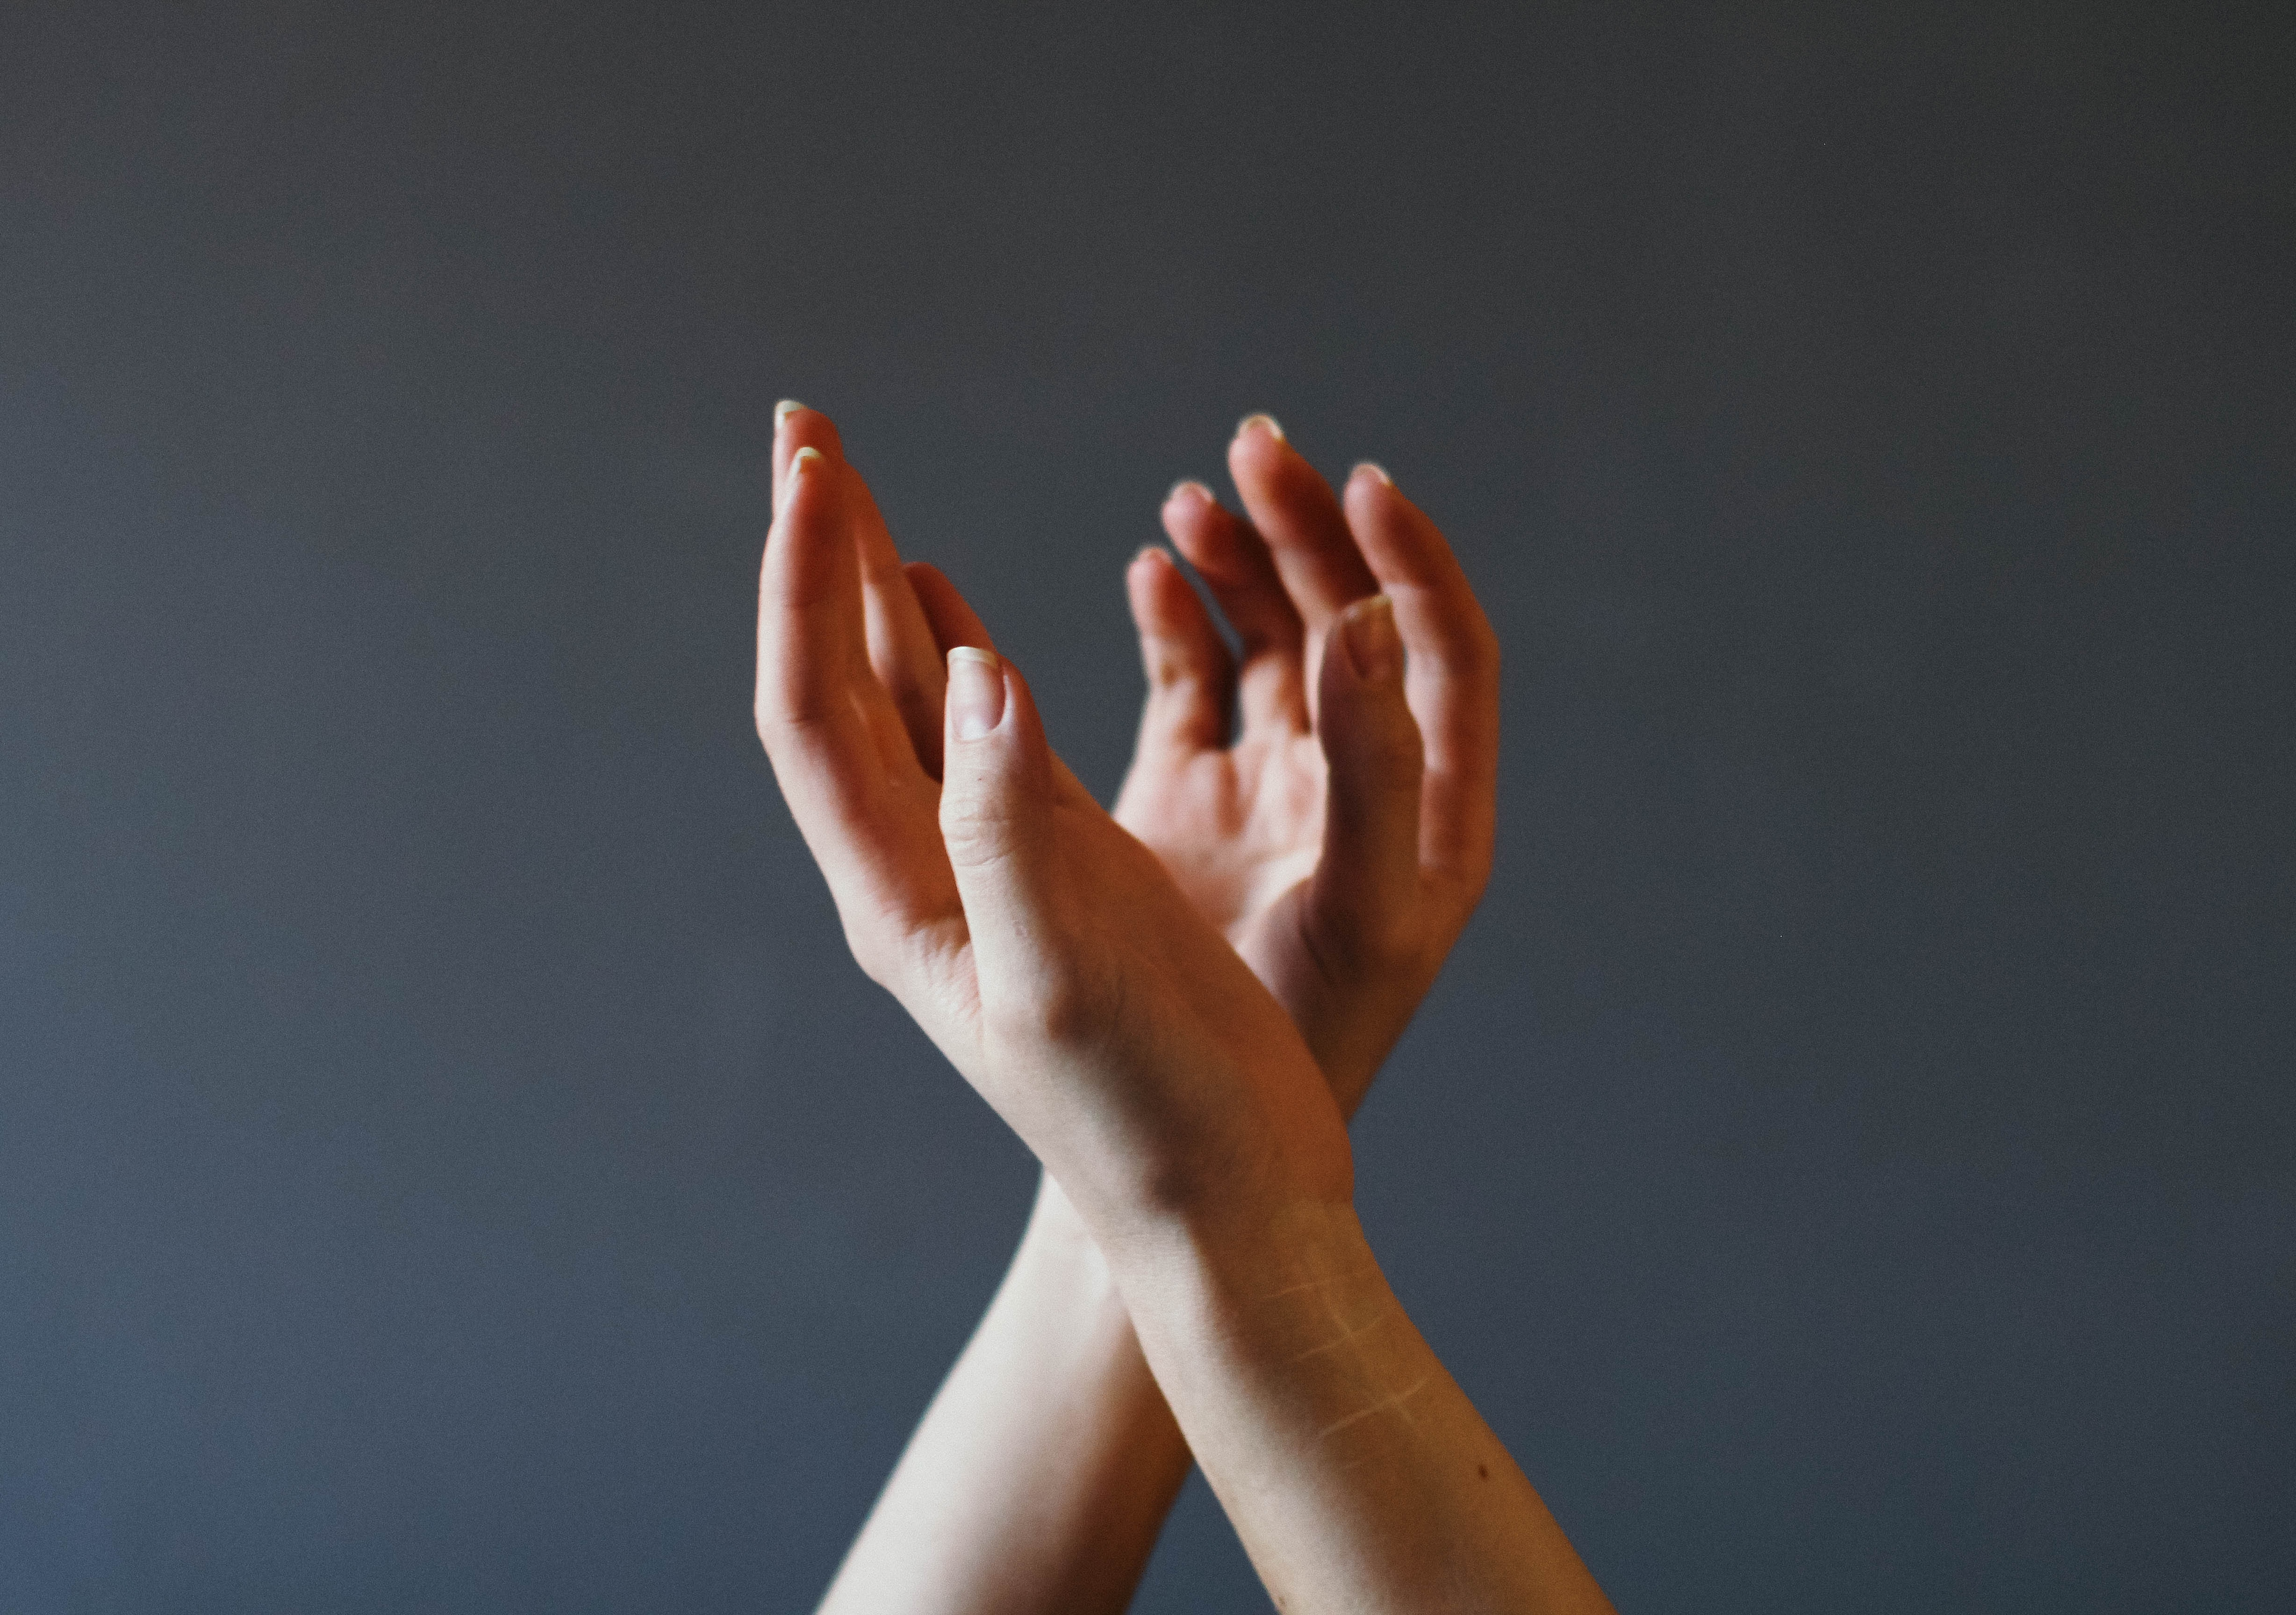 hands on a gray background